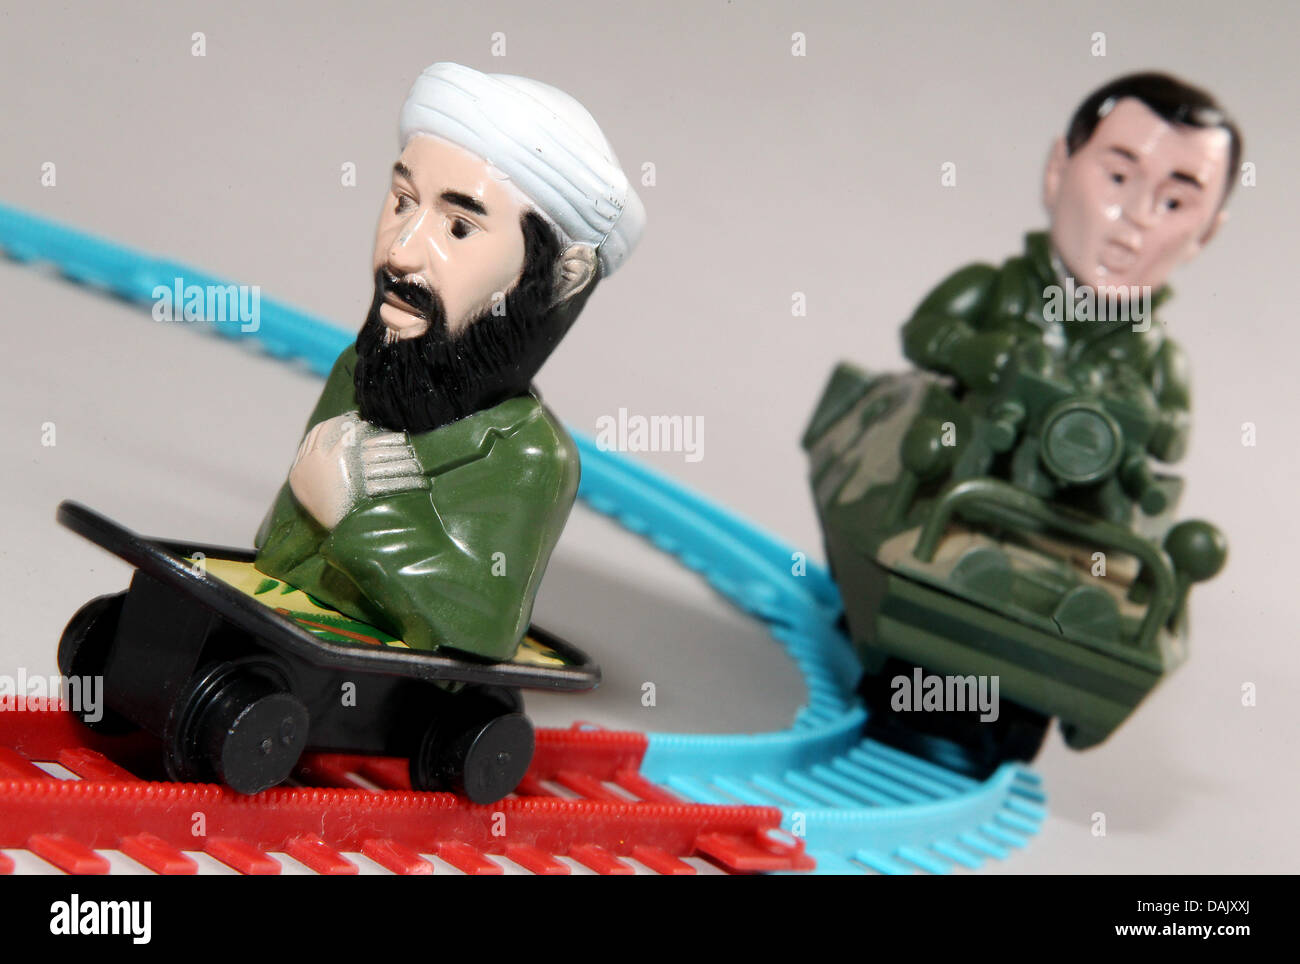 (ILLUSTRATION)An illustration dated 02 May 2011 shows the terrorist Osama bin Laden and the former US President Stock Photo